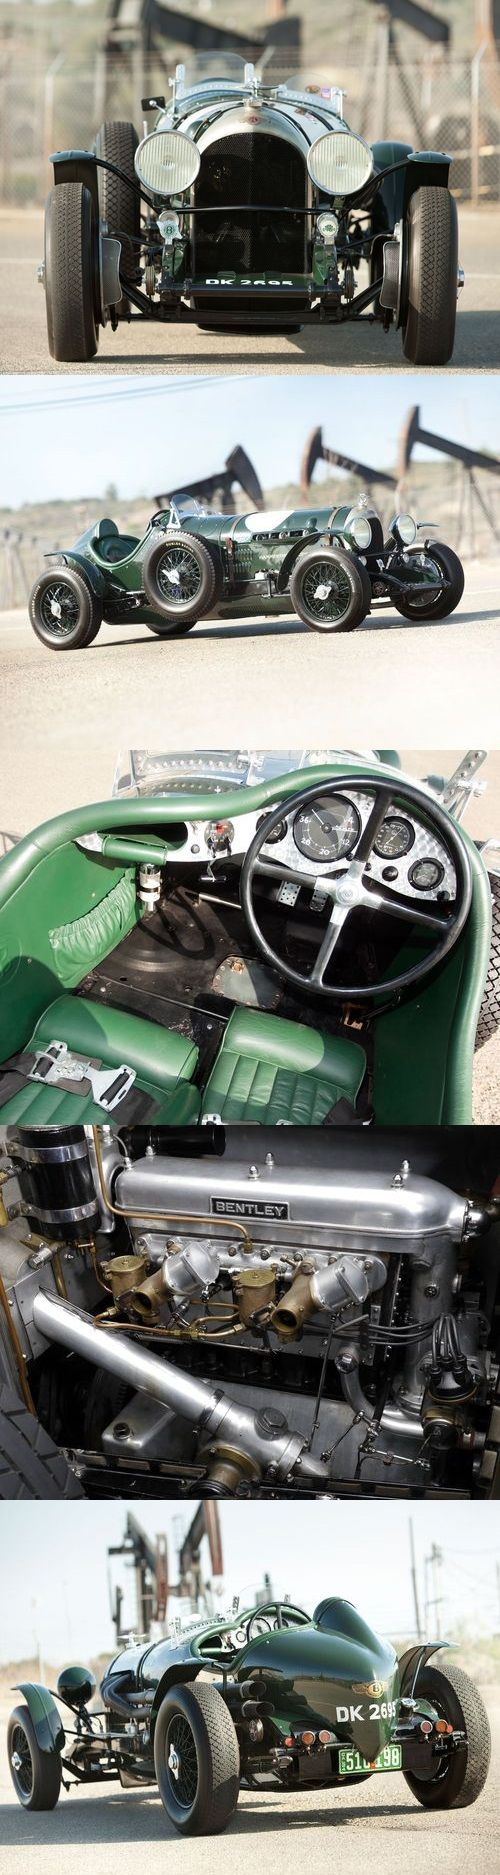 best cars images on pinterest vintage cars antique cars and wheels